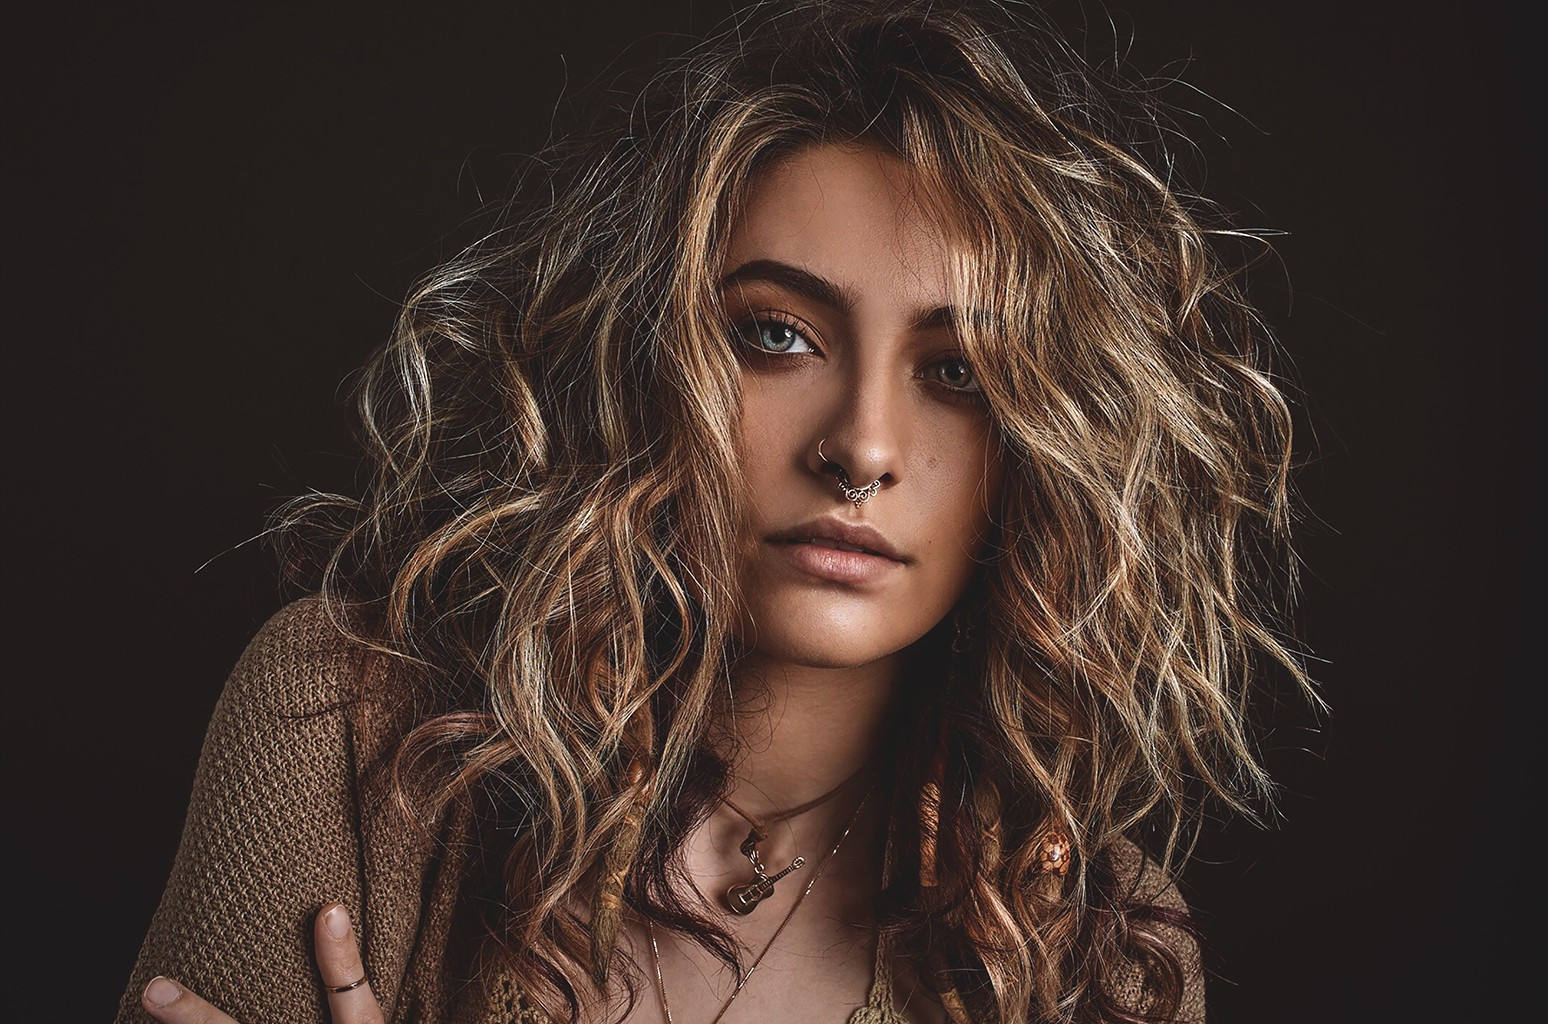 Paris Jackson Unveils 'Eyelids' Video With Manchester Orchestra's Andy Hull